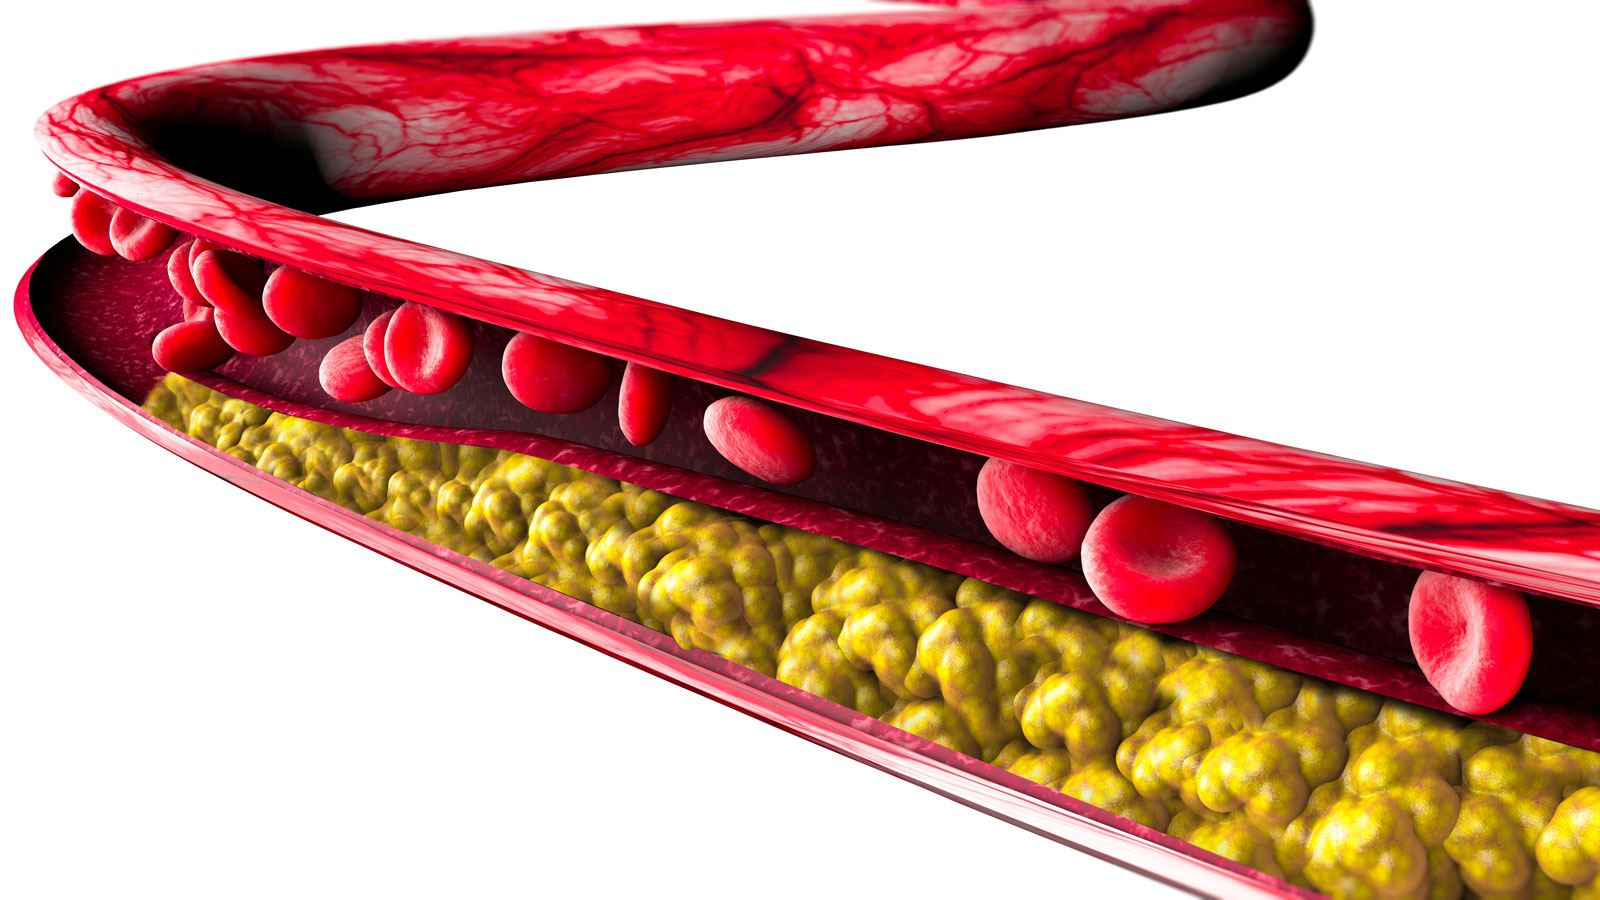 Fat, cholesterol and calcium cells build up inside the artery wall in